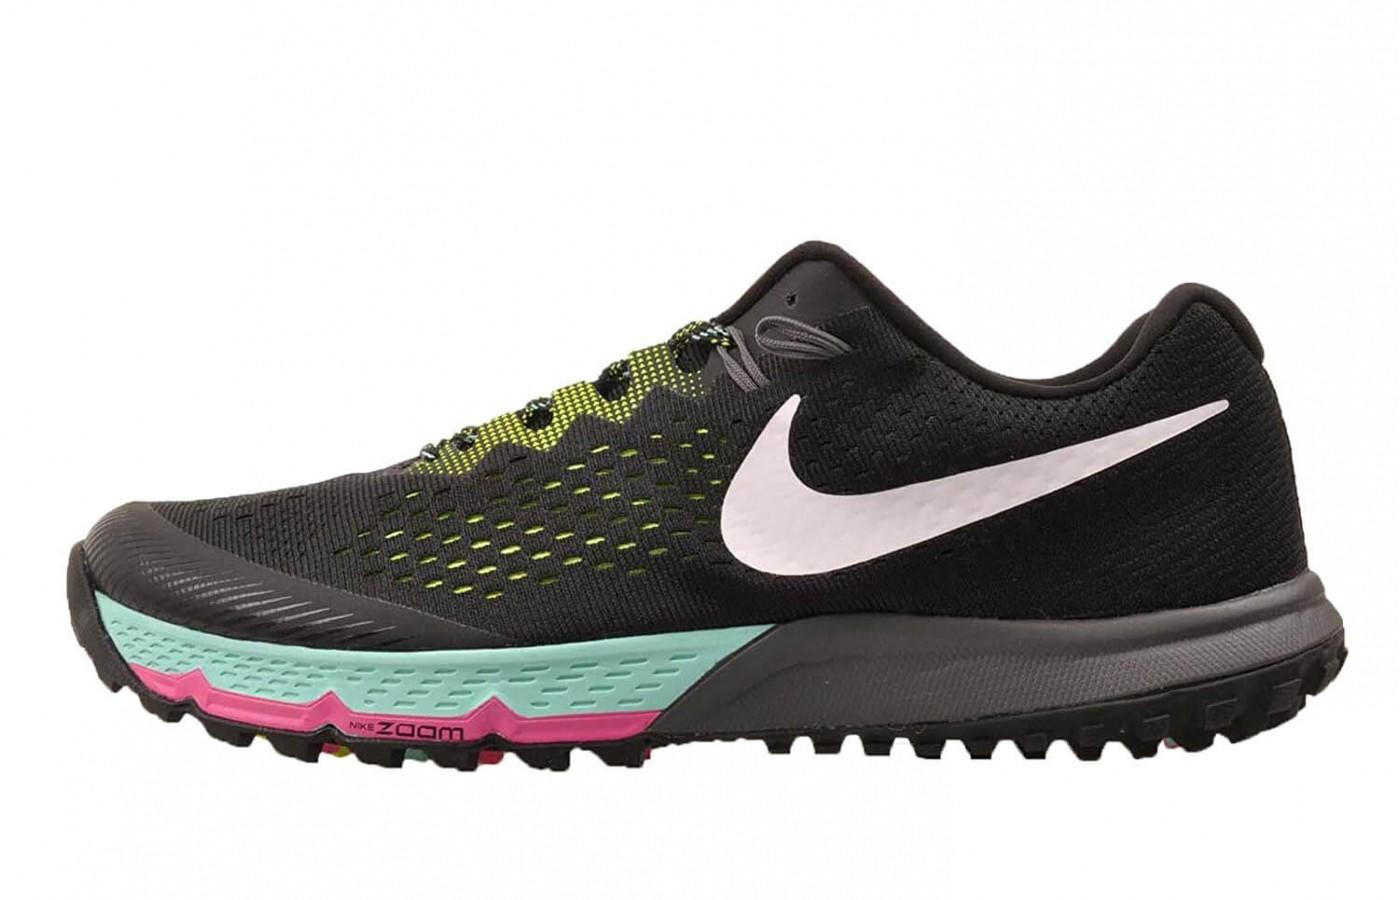 here's a look at the Nike Air Zoom Terra Kiger 4